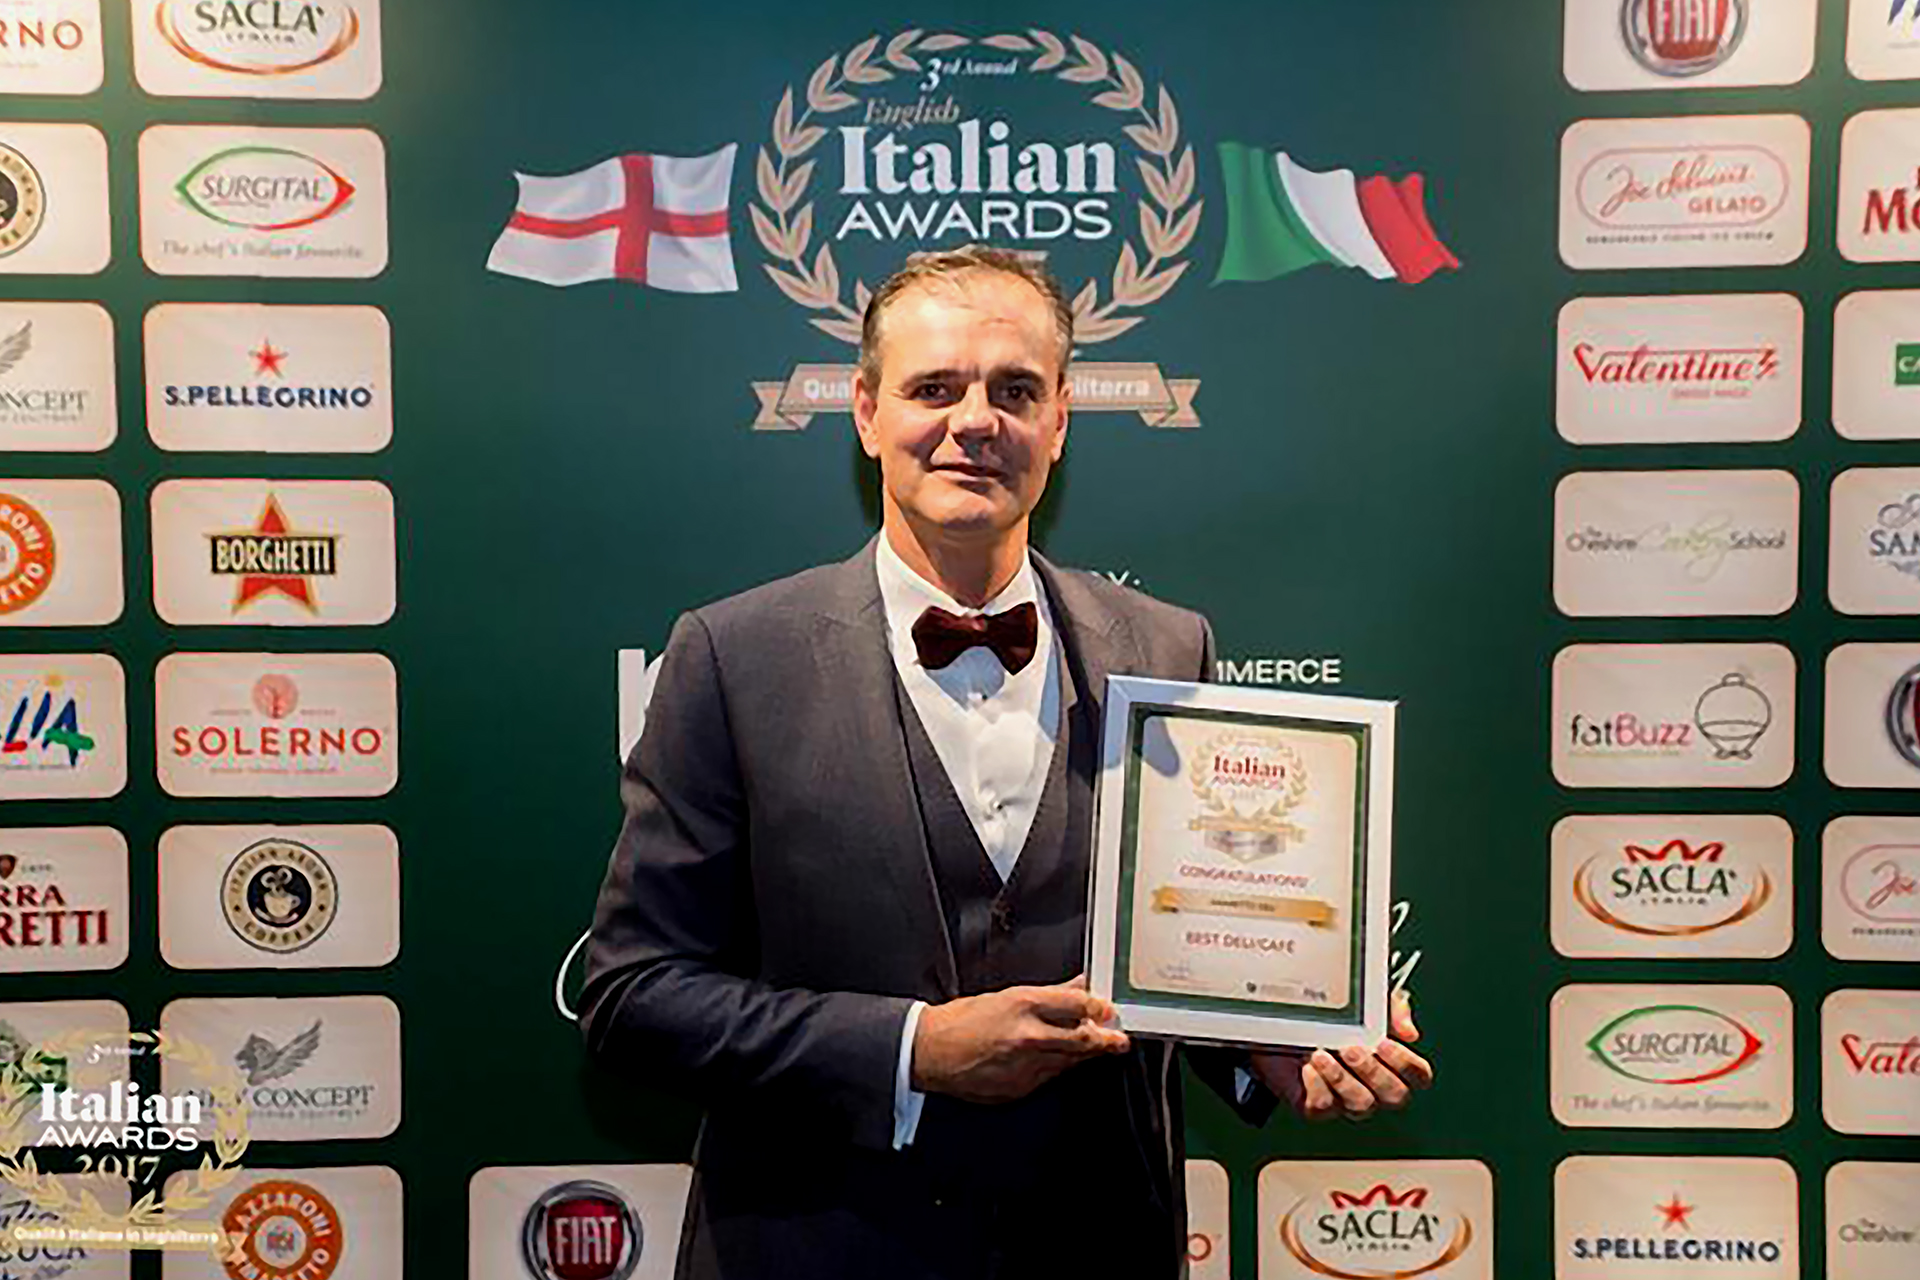 onafez design amaretto deli norwich italian awards 3rd